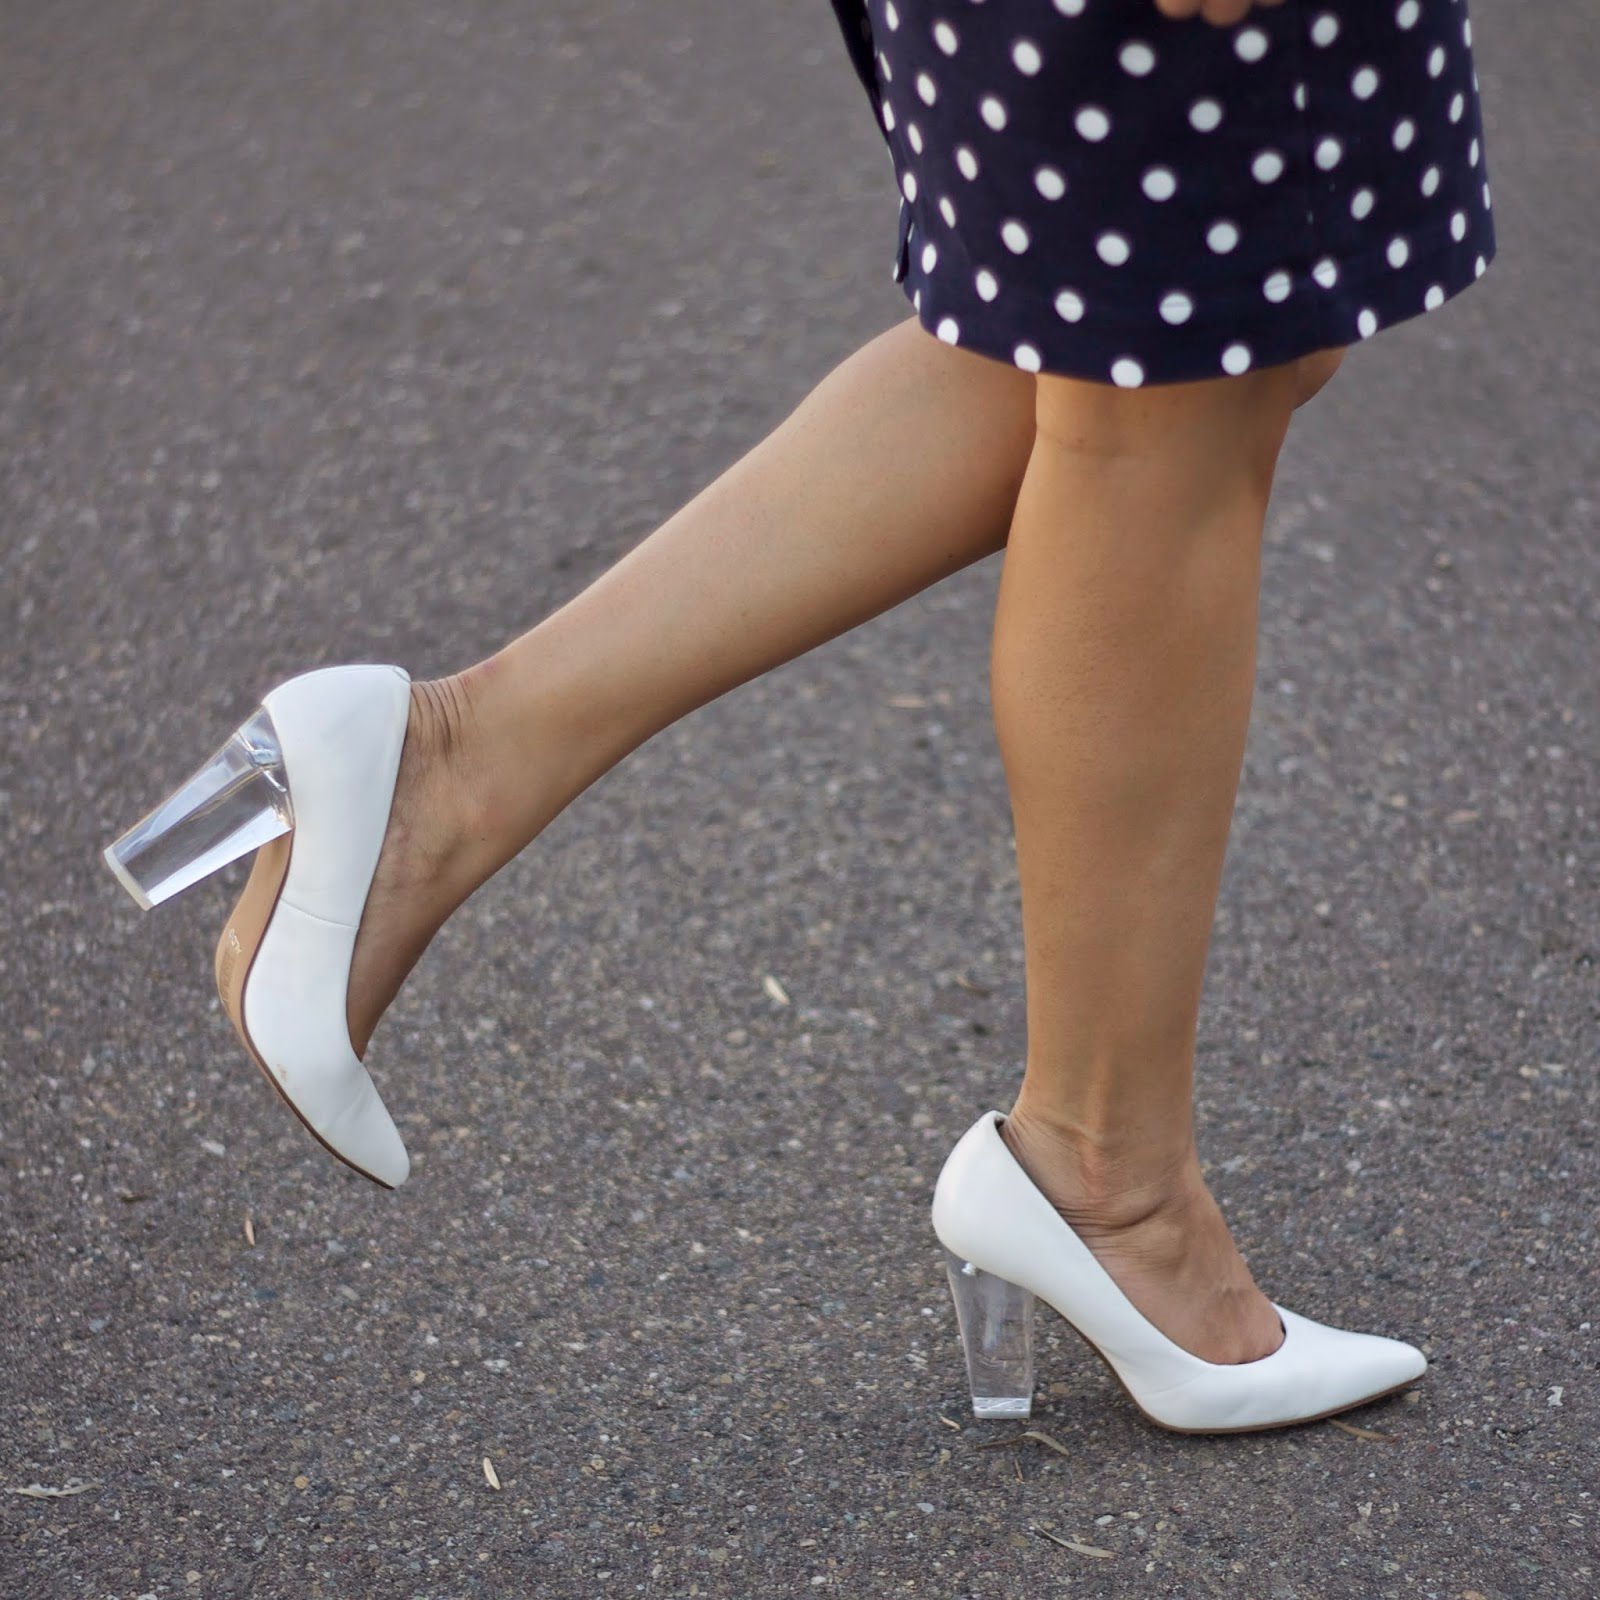 Aldo white lucite heels, see through heels, Aldo with clear heels, white leather heels, how to wear white heels